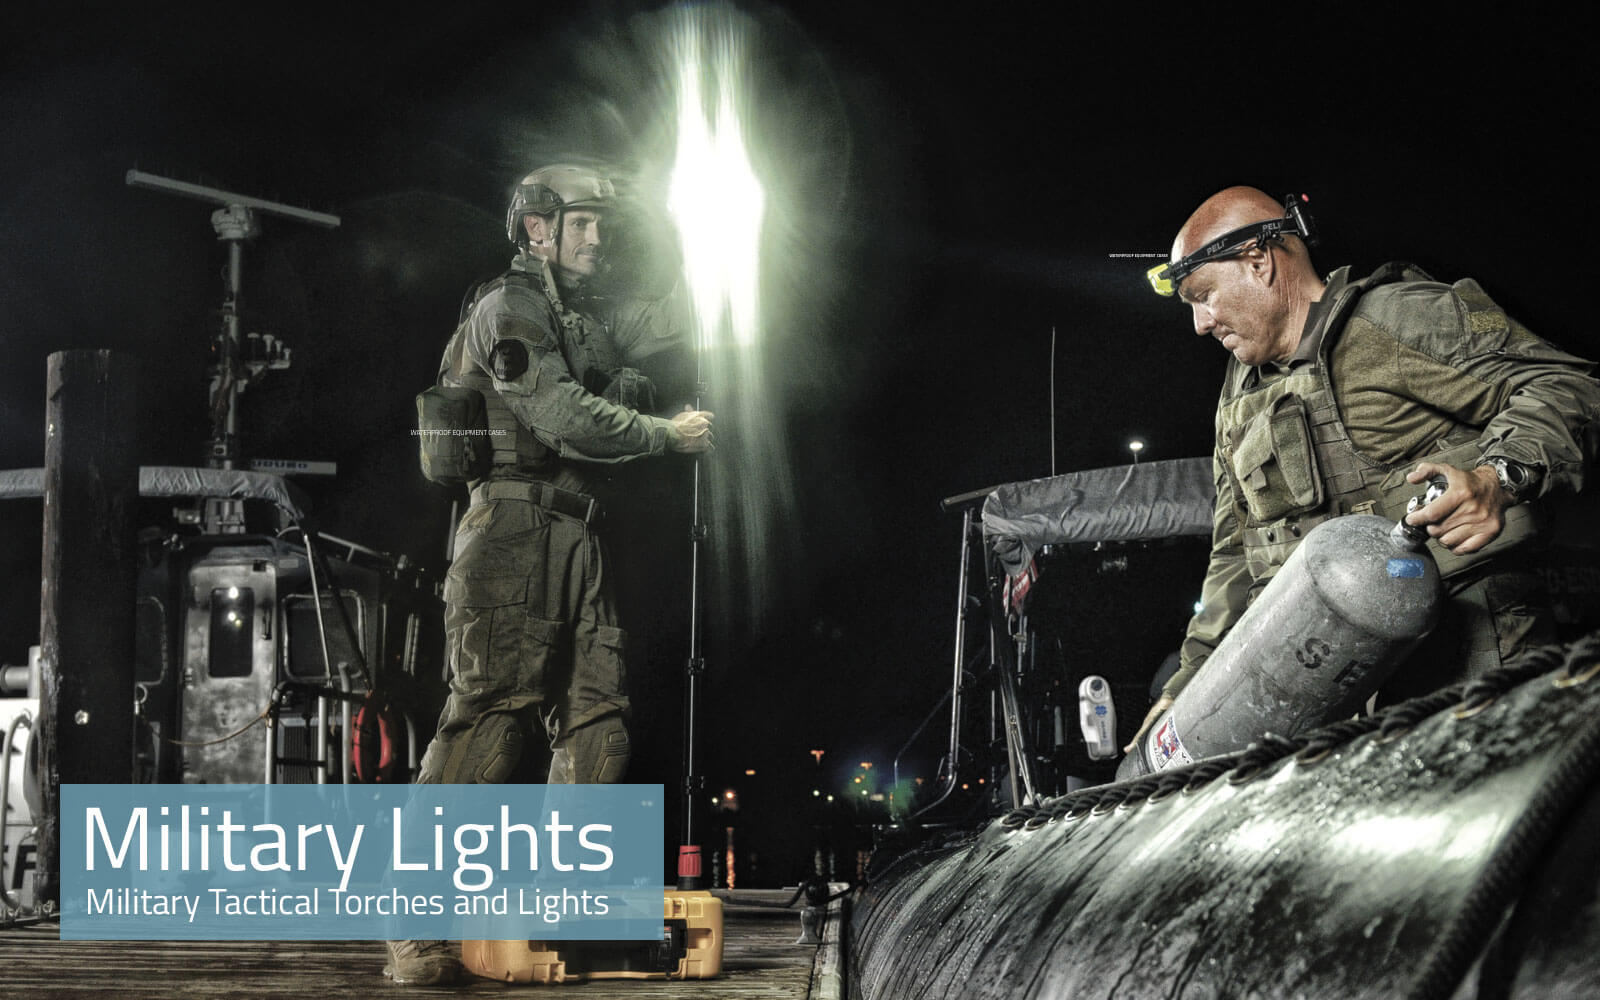 Military Tactical Torches and Lights